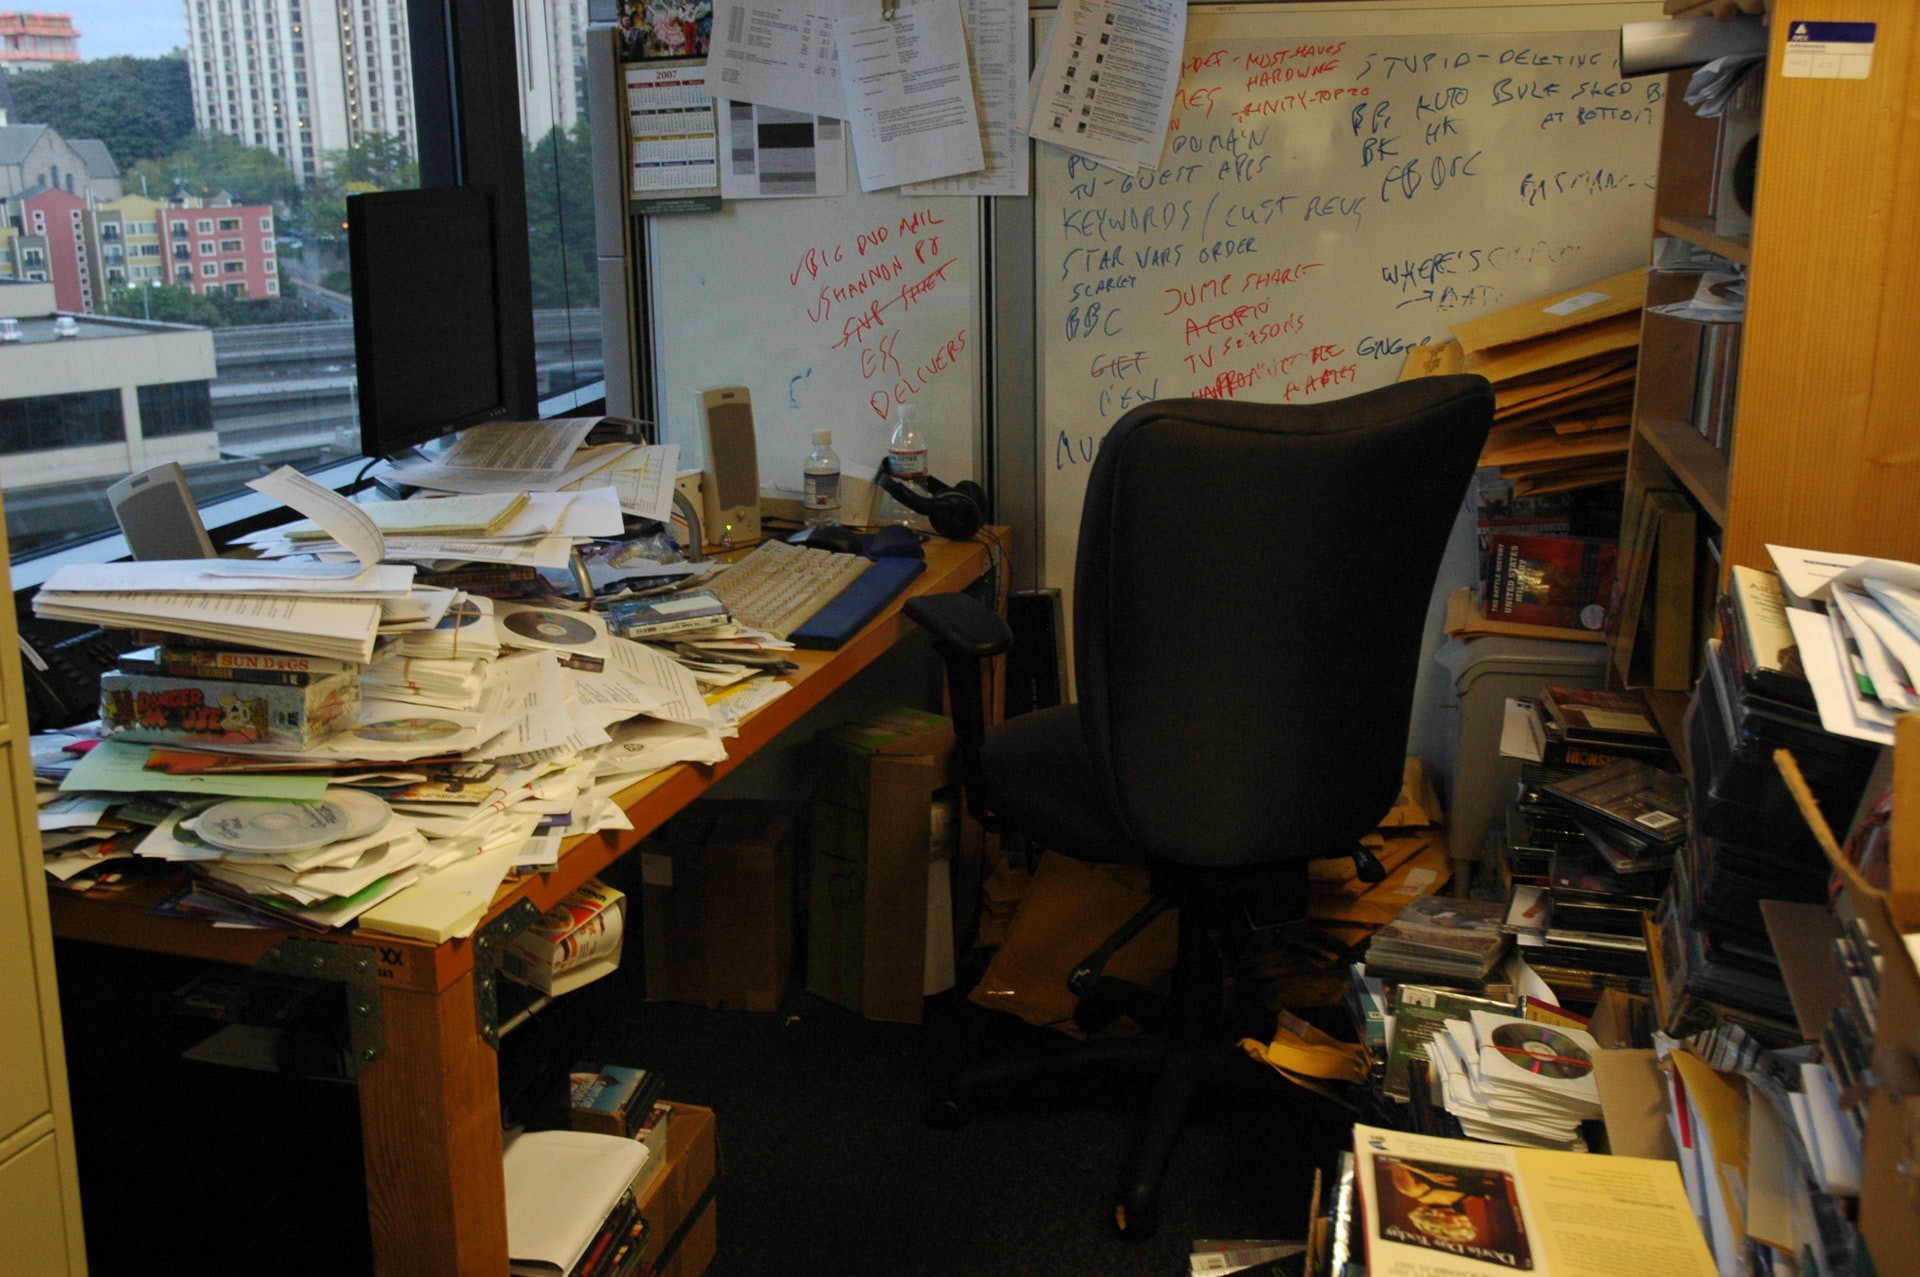 Entrepreneurs messy desk — too busy to organize